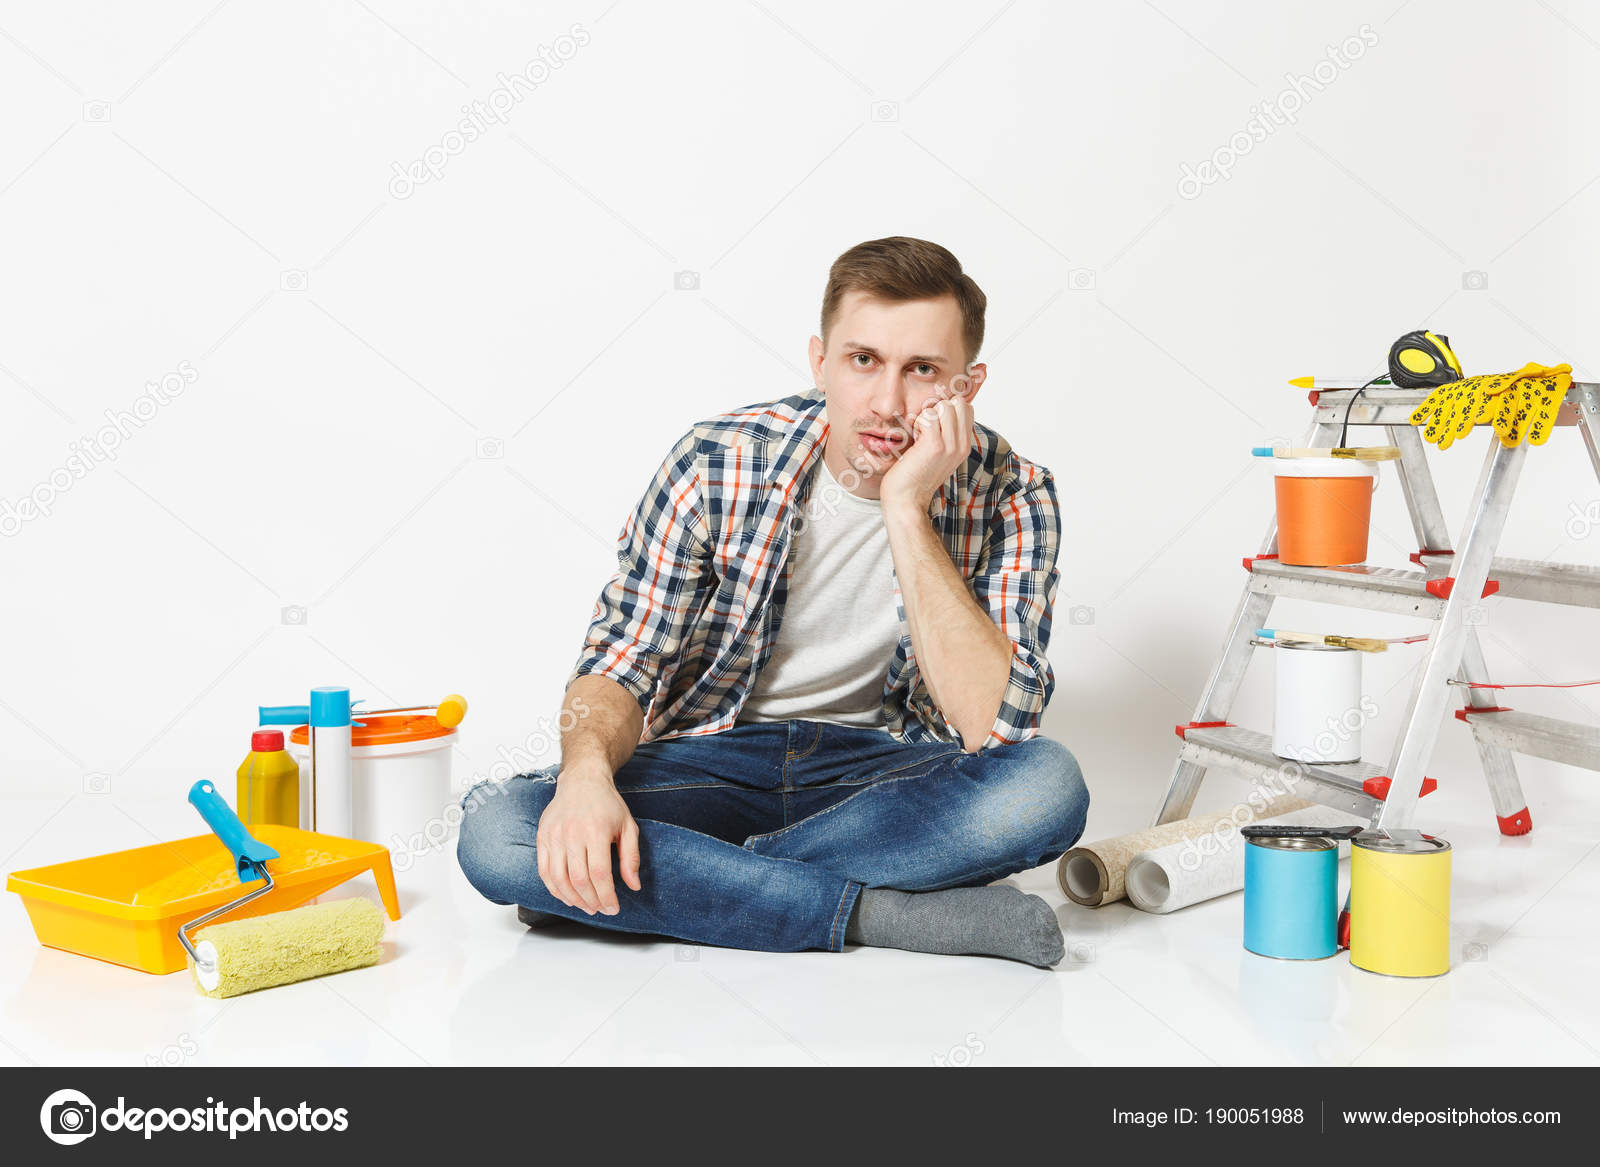 Confused Indifferent Annoyed Man Sitting On Floor With Tired Expression Face Instruments For Renovation Apartment Isolated White Background Wallpaper